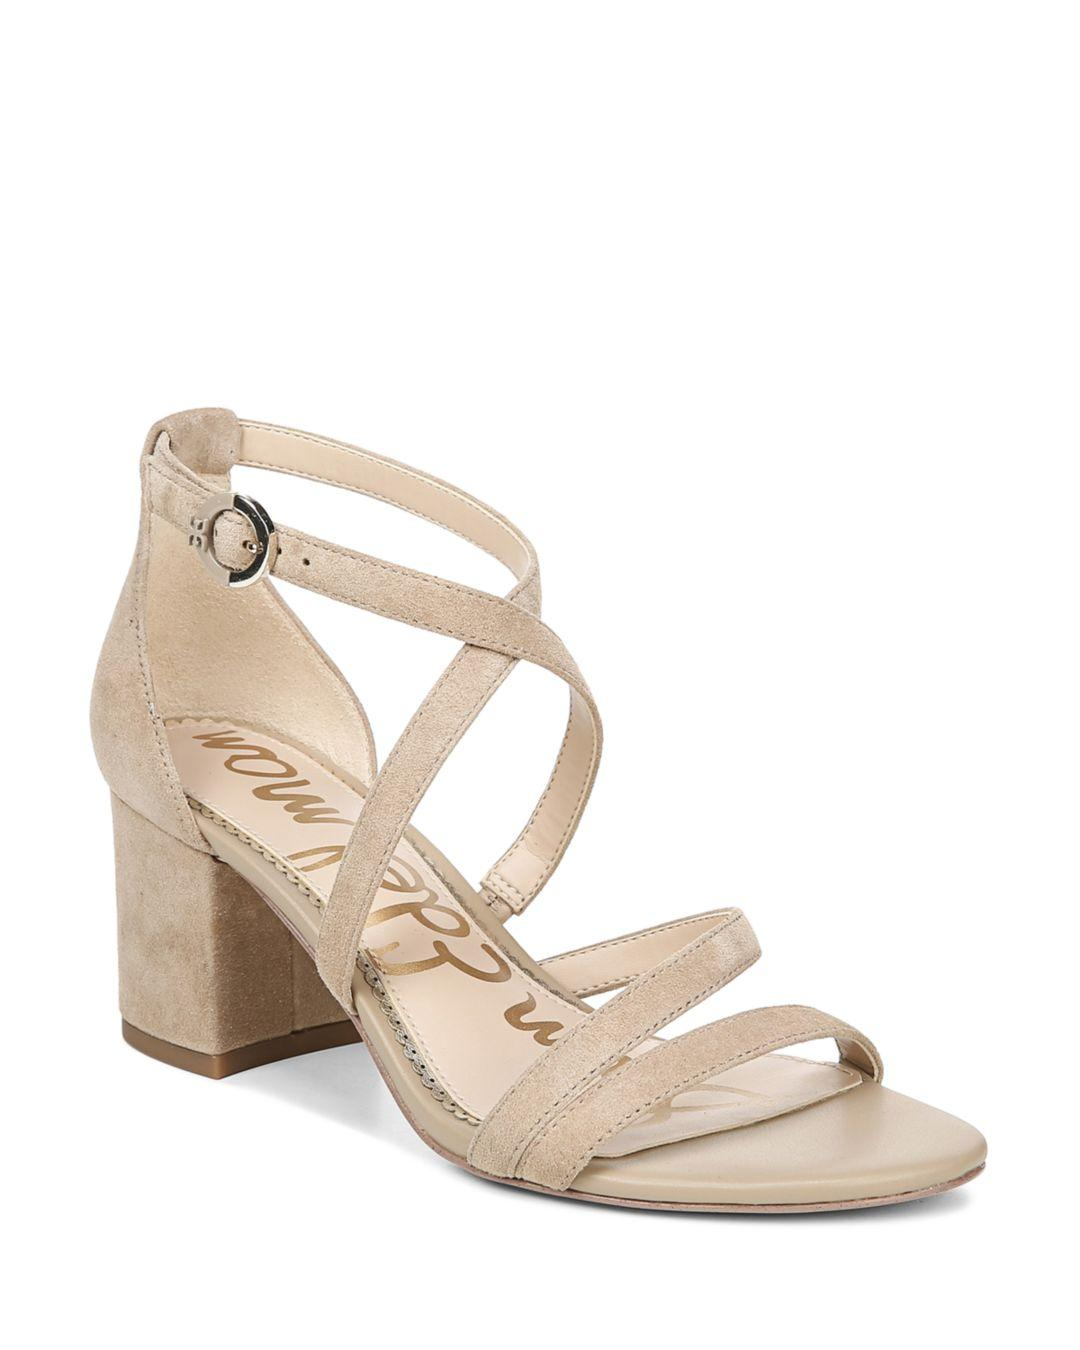 6fdfb4f11 Lyst - Sam Edelman Women s Stacie Block-heel Sandals in Natural